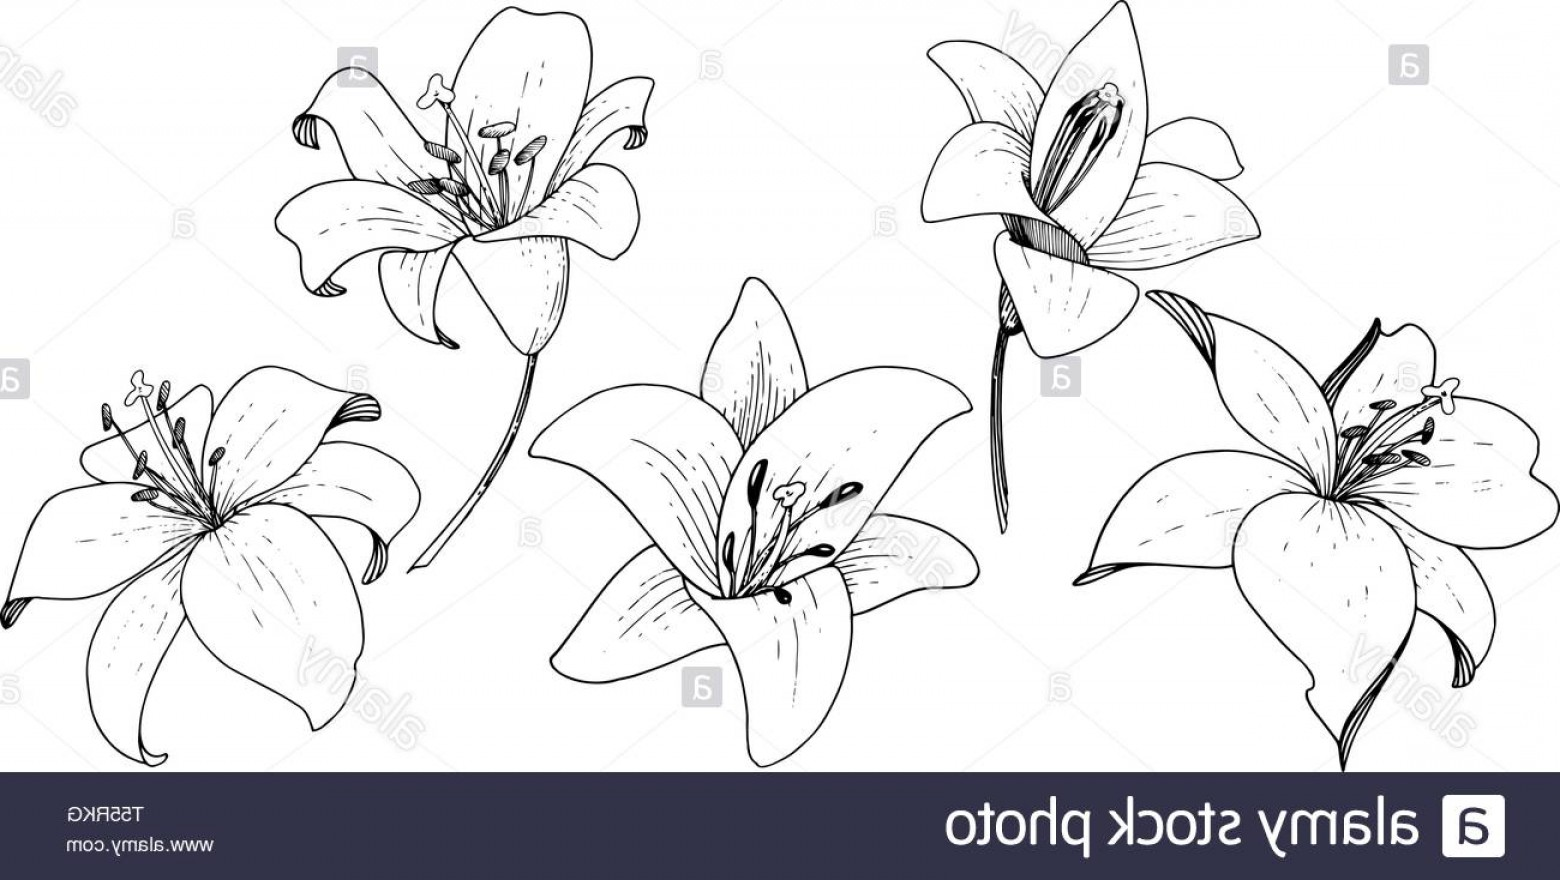 Lily Vector Art: Vector Lily Floral Botanical Flower Engraved Ink Art On White Background Isolated Lilium Illustration Element Image